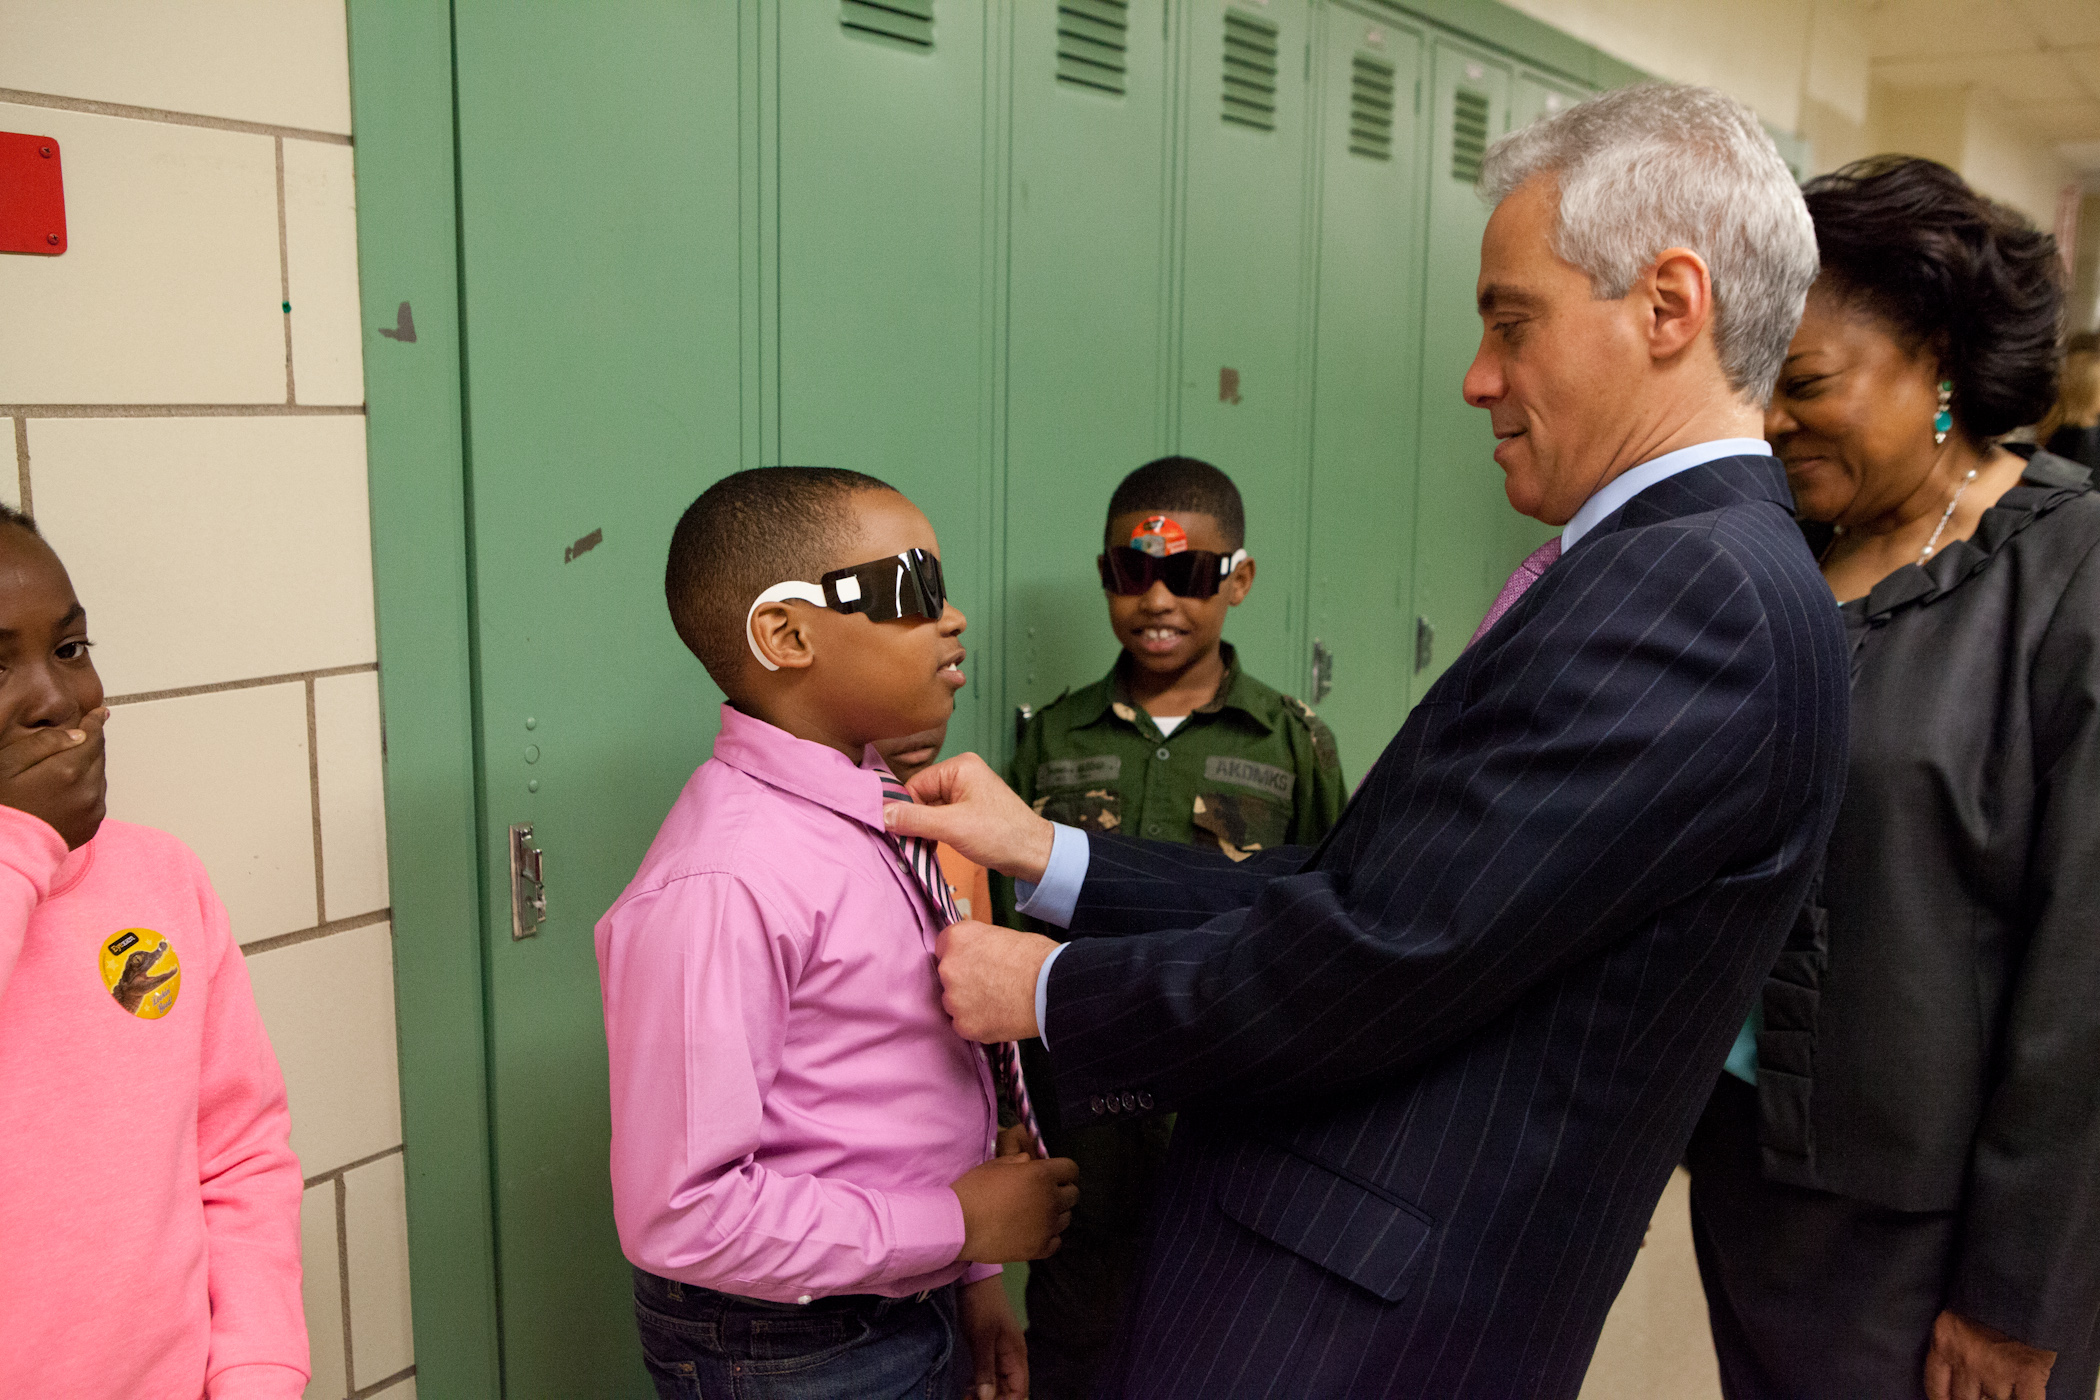 Mayor Emanuel visits with students receiving free vision exams at Sumner Elementary school